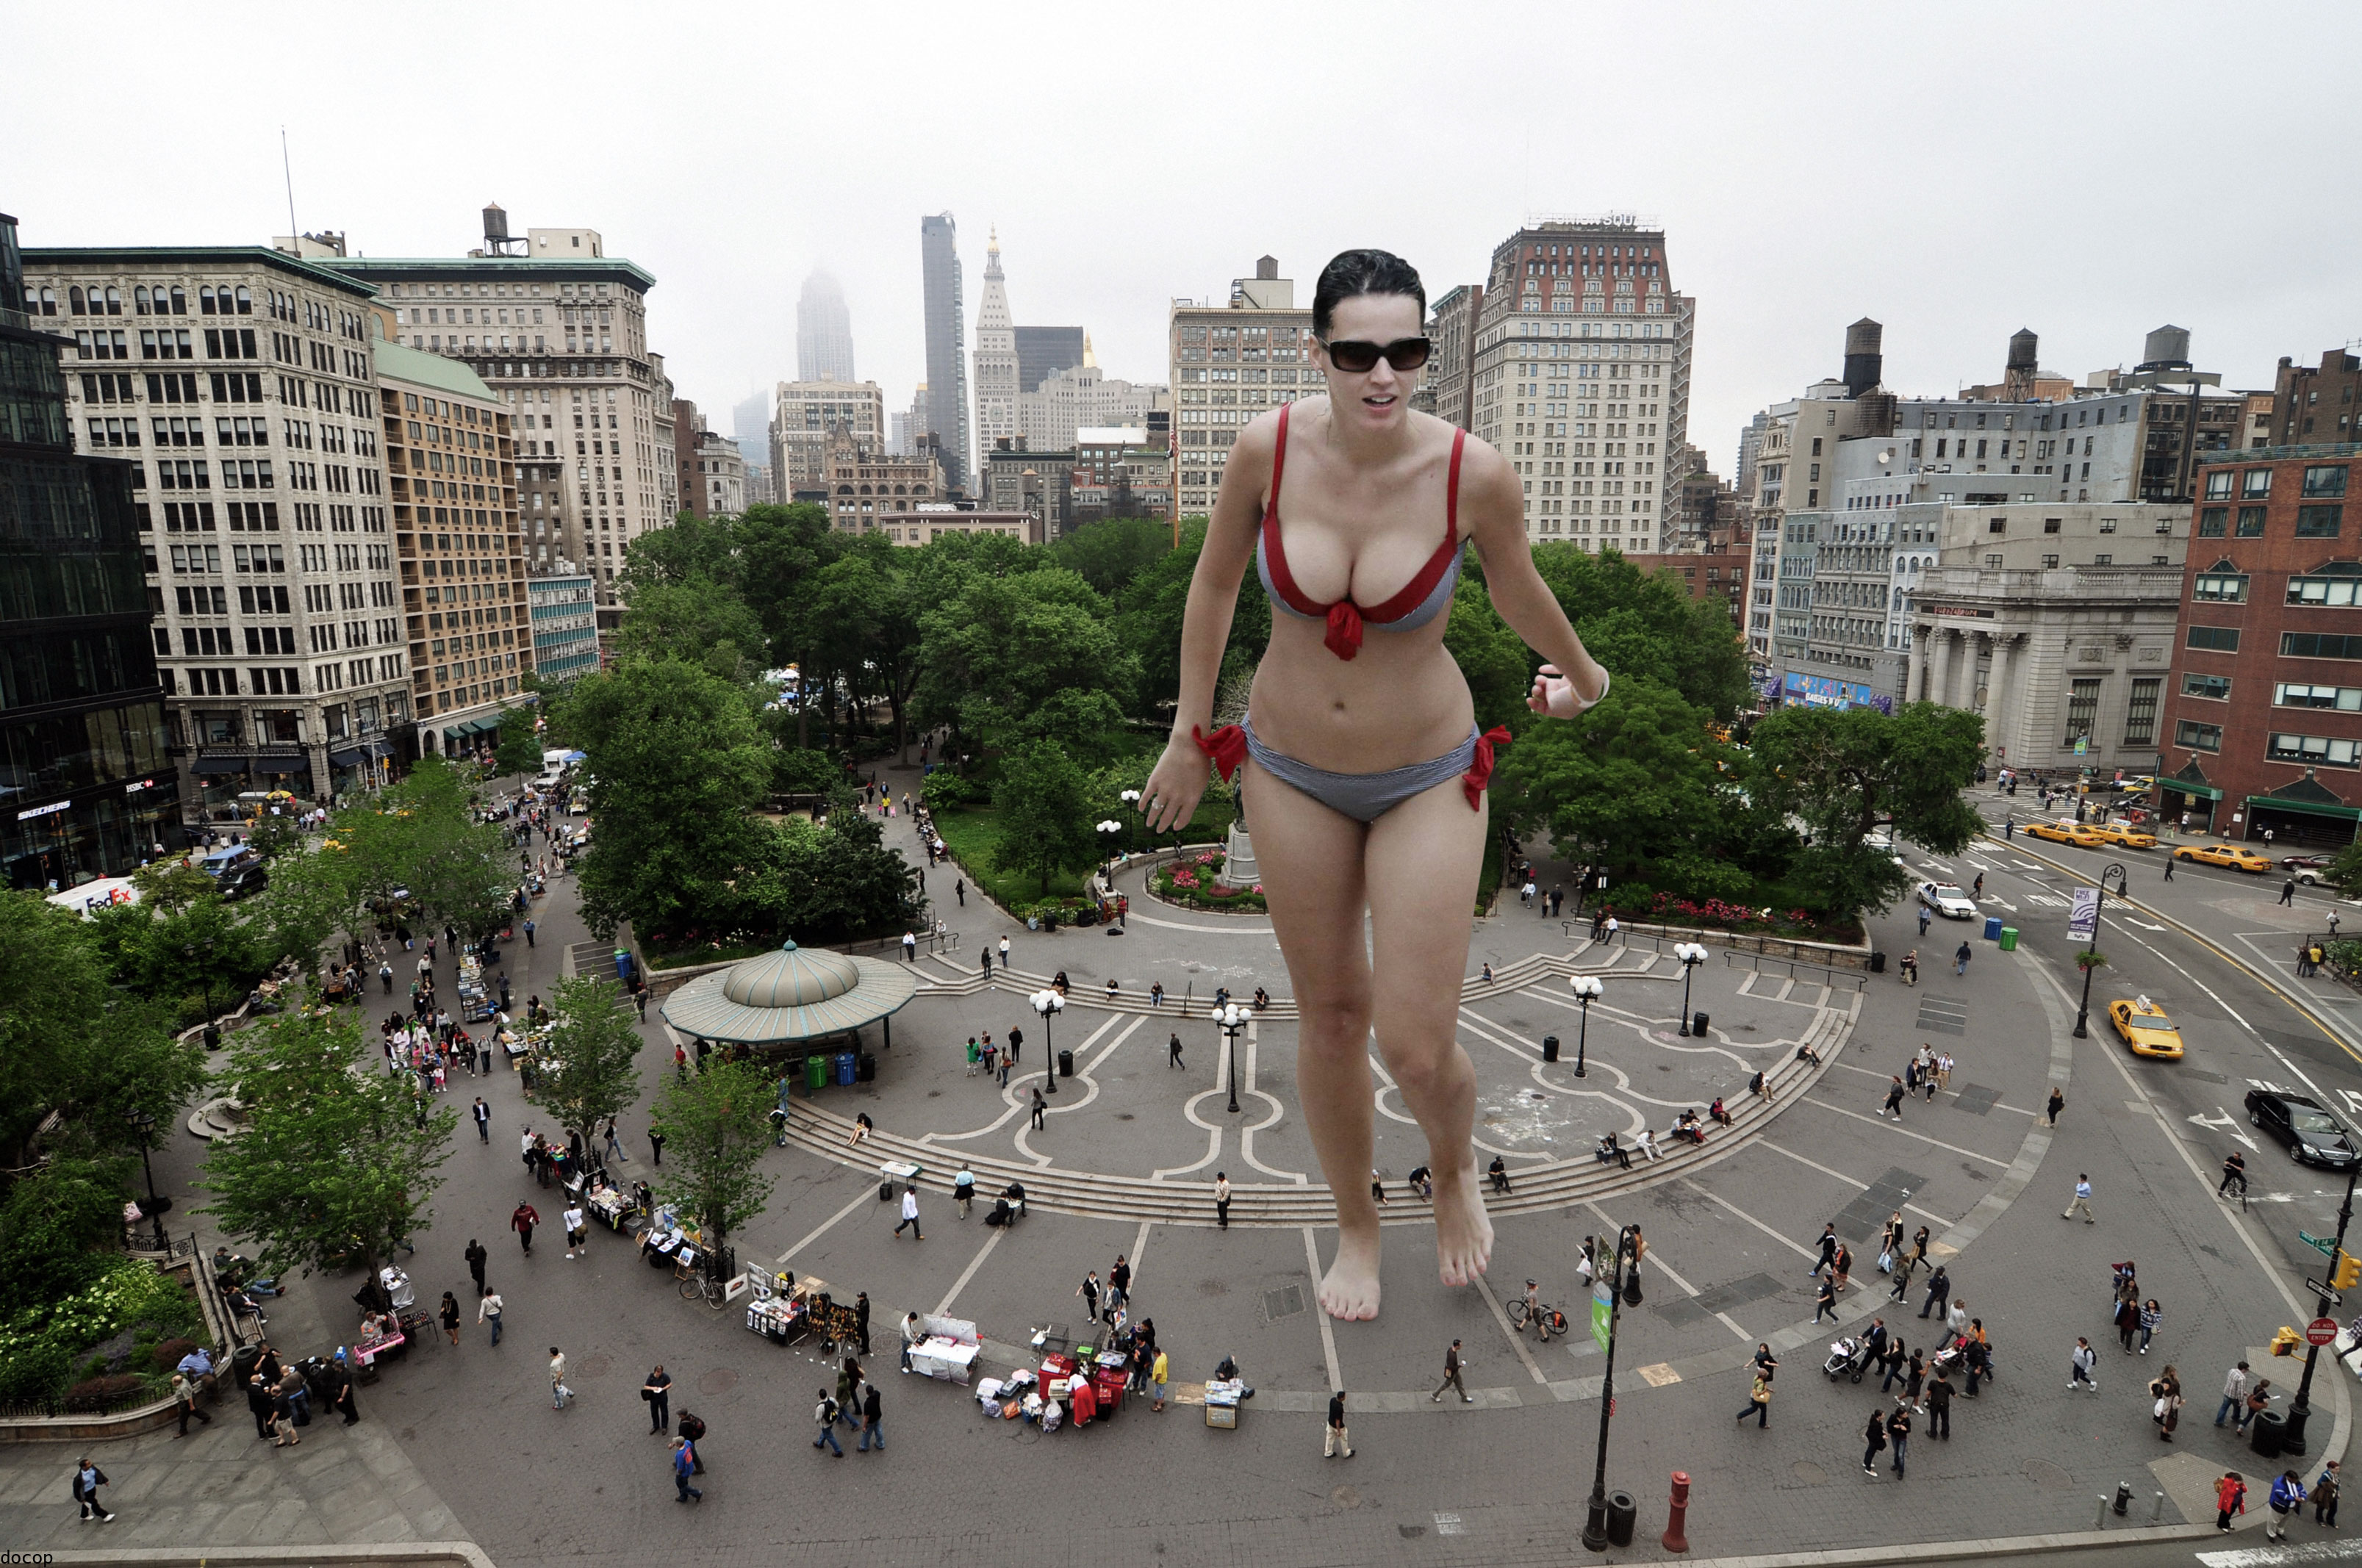 Giantess Katy Perry in City by docop